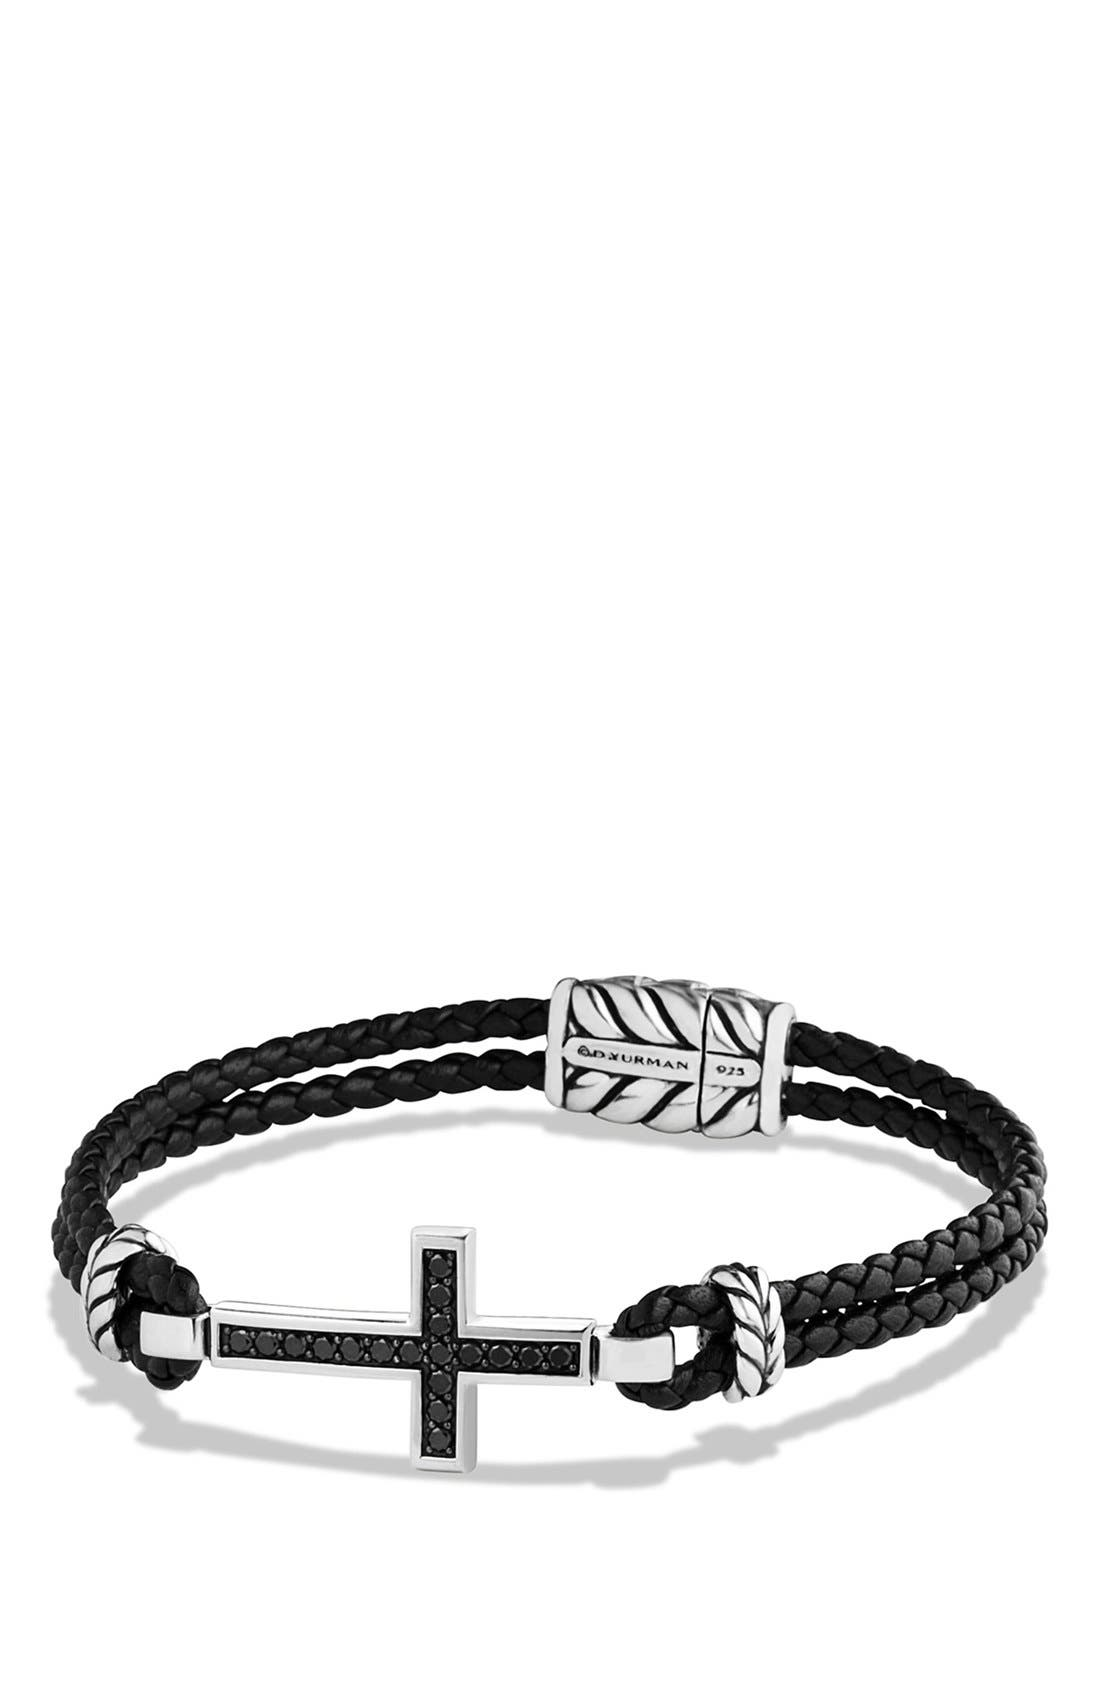 Main Image - David Yurman Pavé Cross Bracelet with Black Diamonds